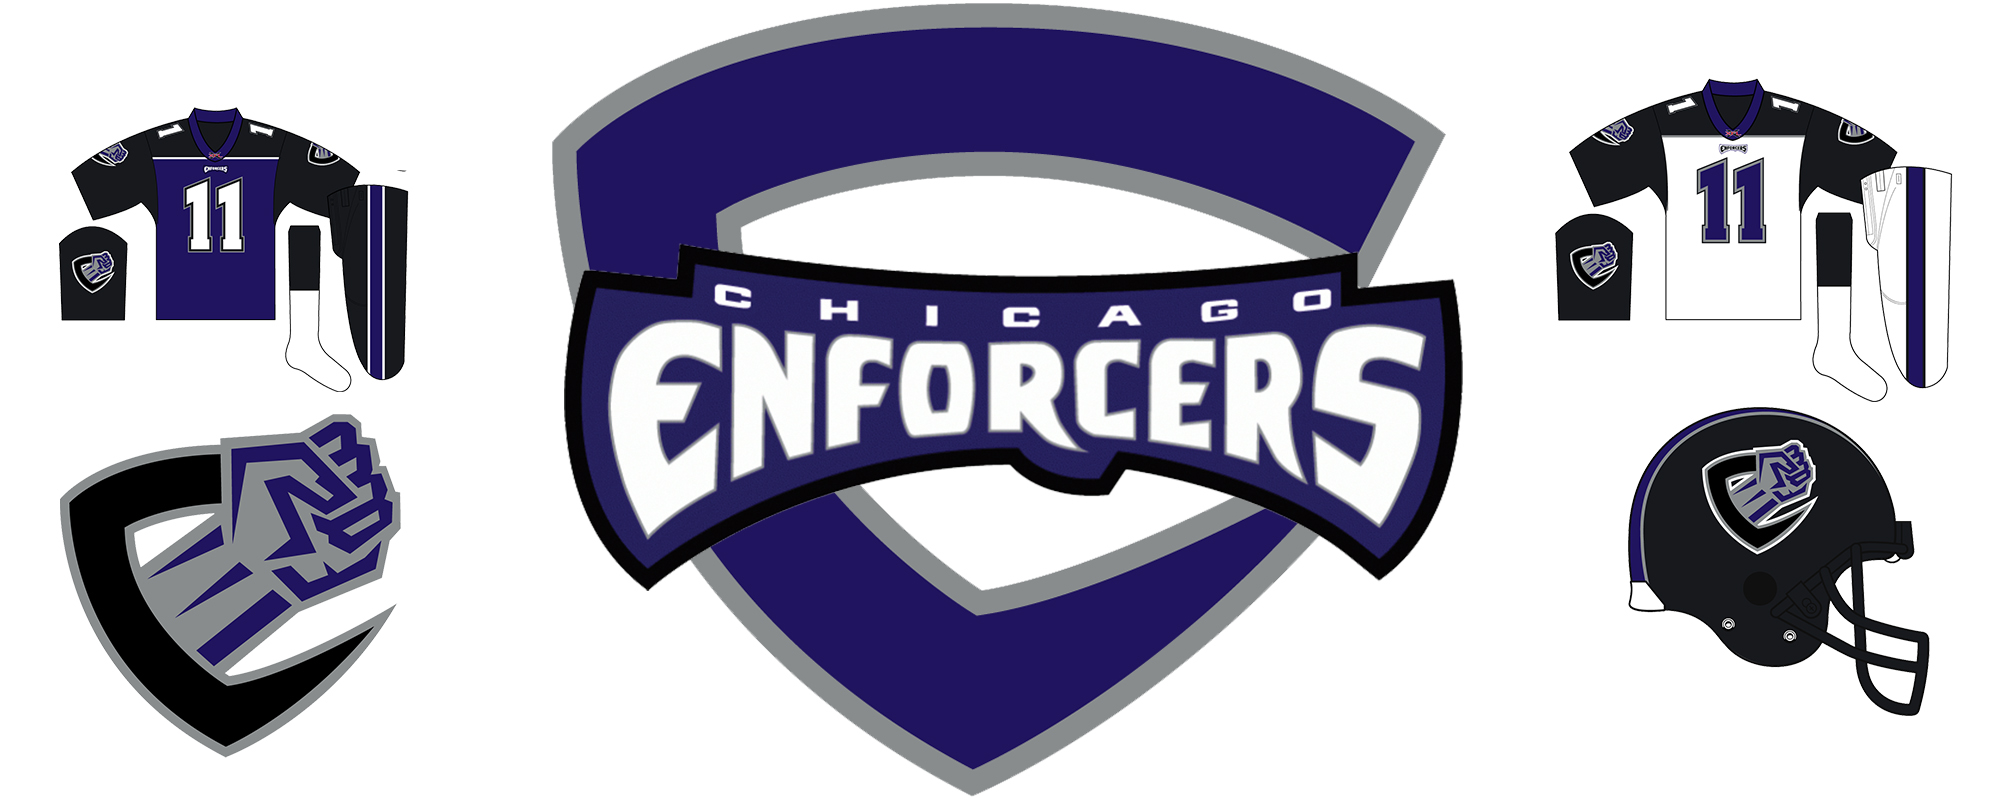 1-Chicago-Enforcers-banner